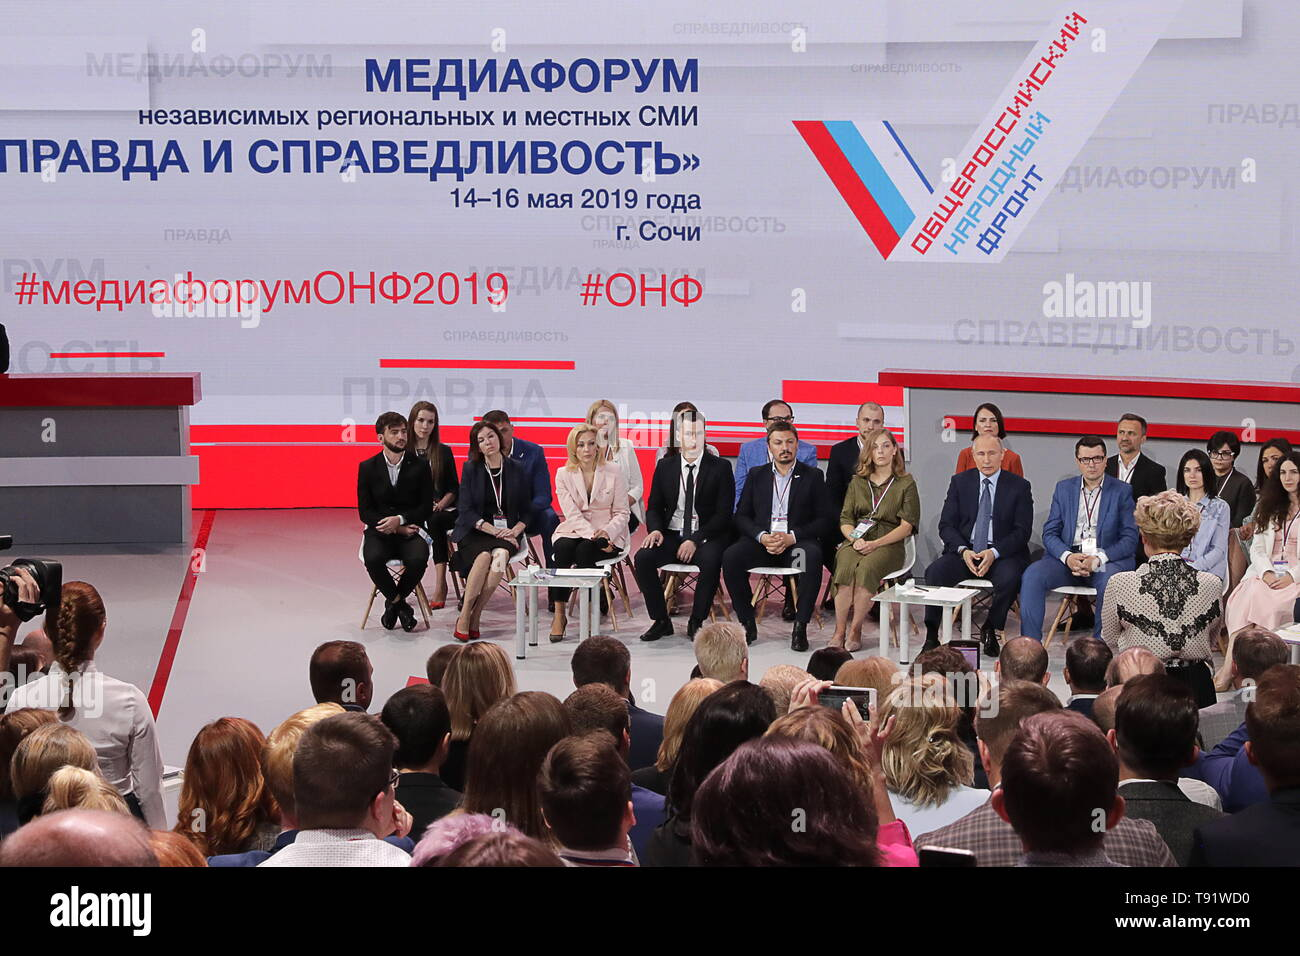 Sochi, Russia. 16th May, 2019. SOCHI, RUSSIA - MAY 16, 2019: Russia's President Vladimir Putin (4th R middle) attends the plenary meeting at the Independent Local and Regional Media Forum held by the All-Russian People's Front. Mikhail Metzel/TASS Credit: ITAR-TASS News Agency/Alamy Live News - Stock Image